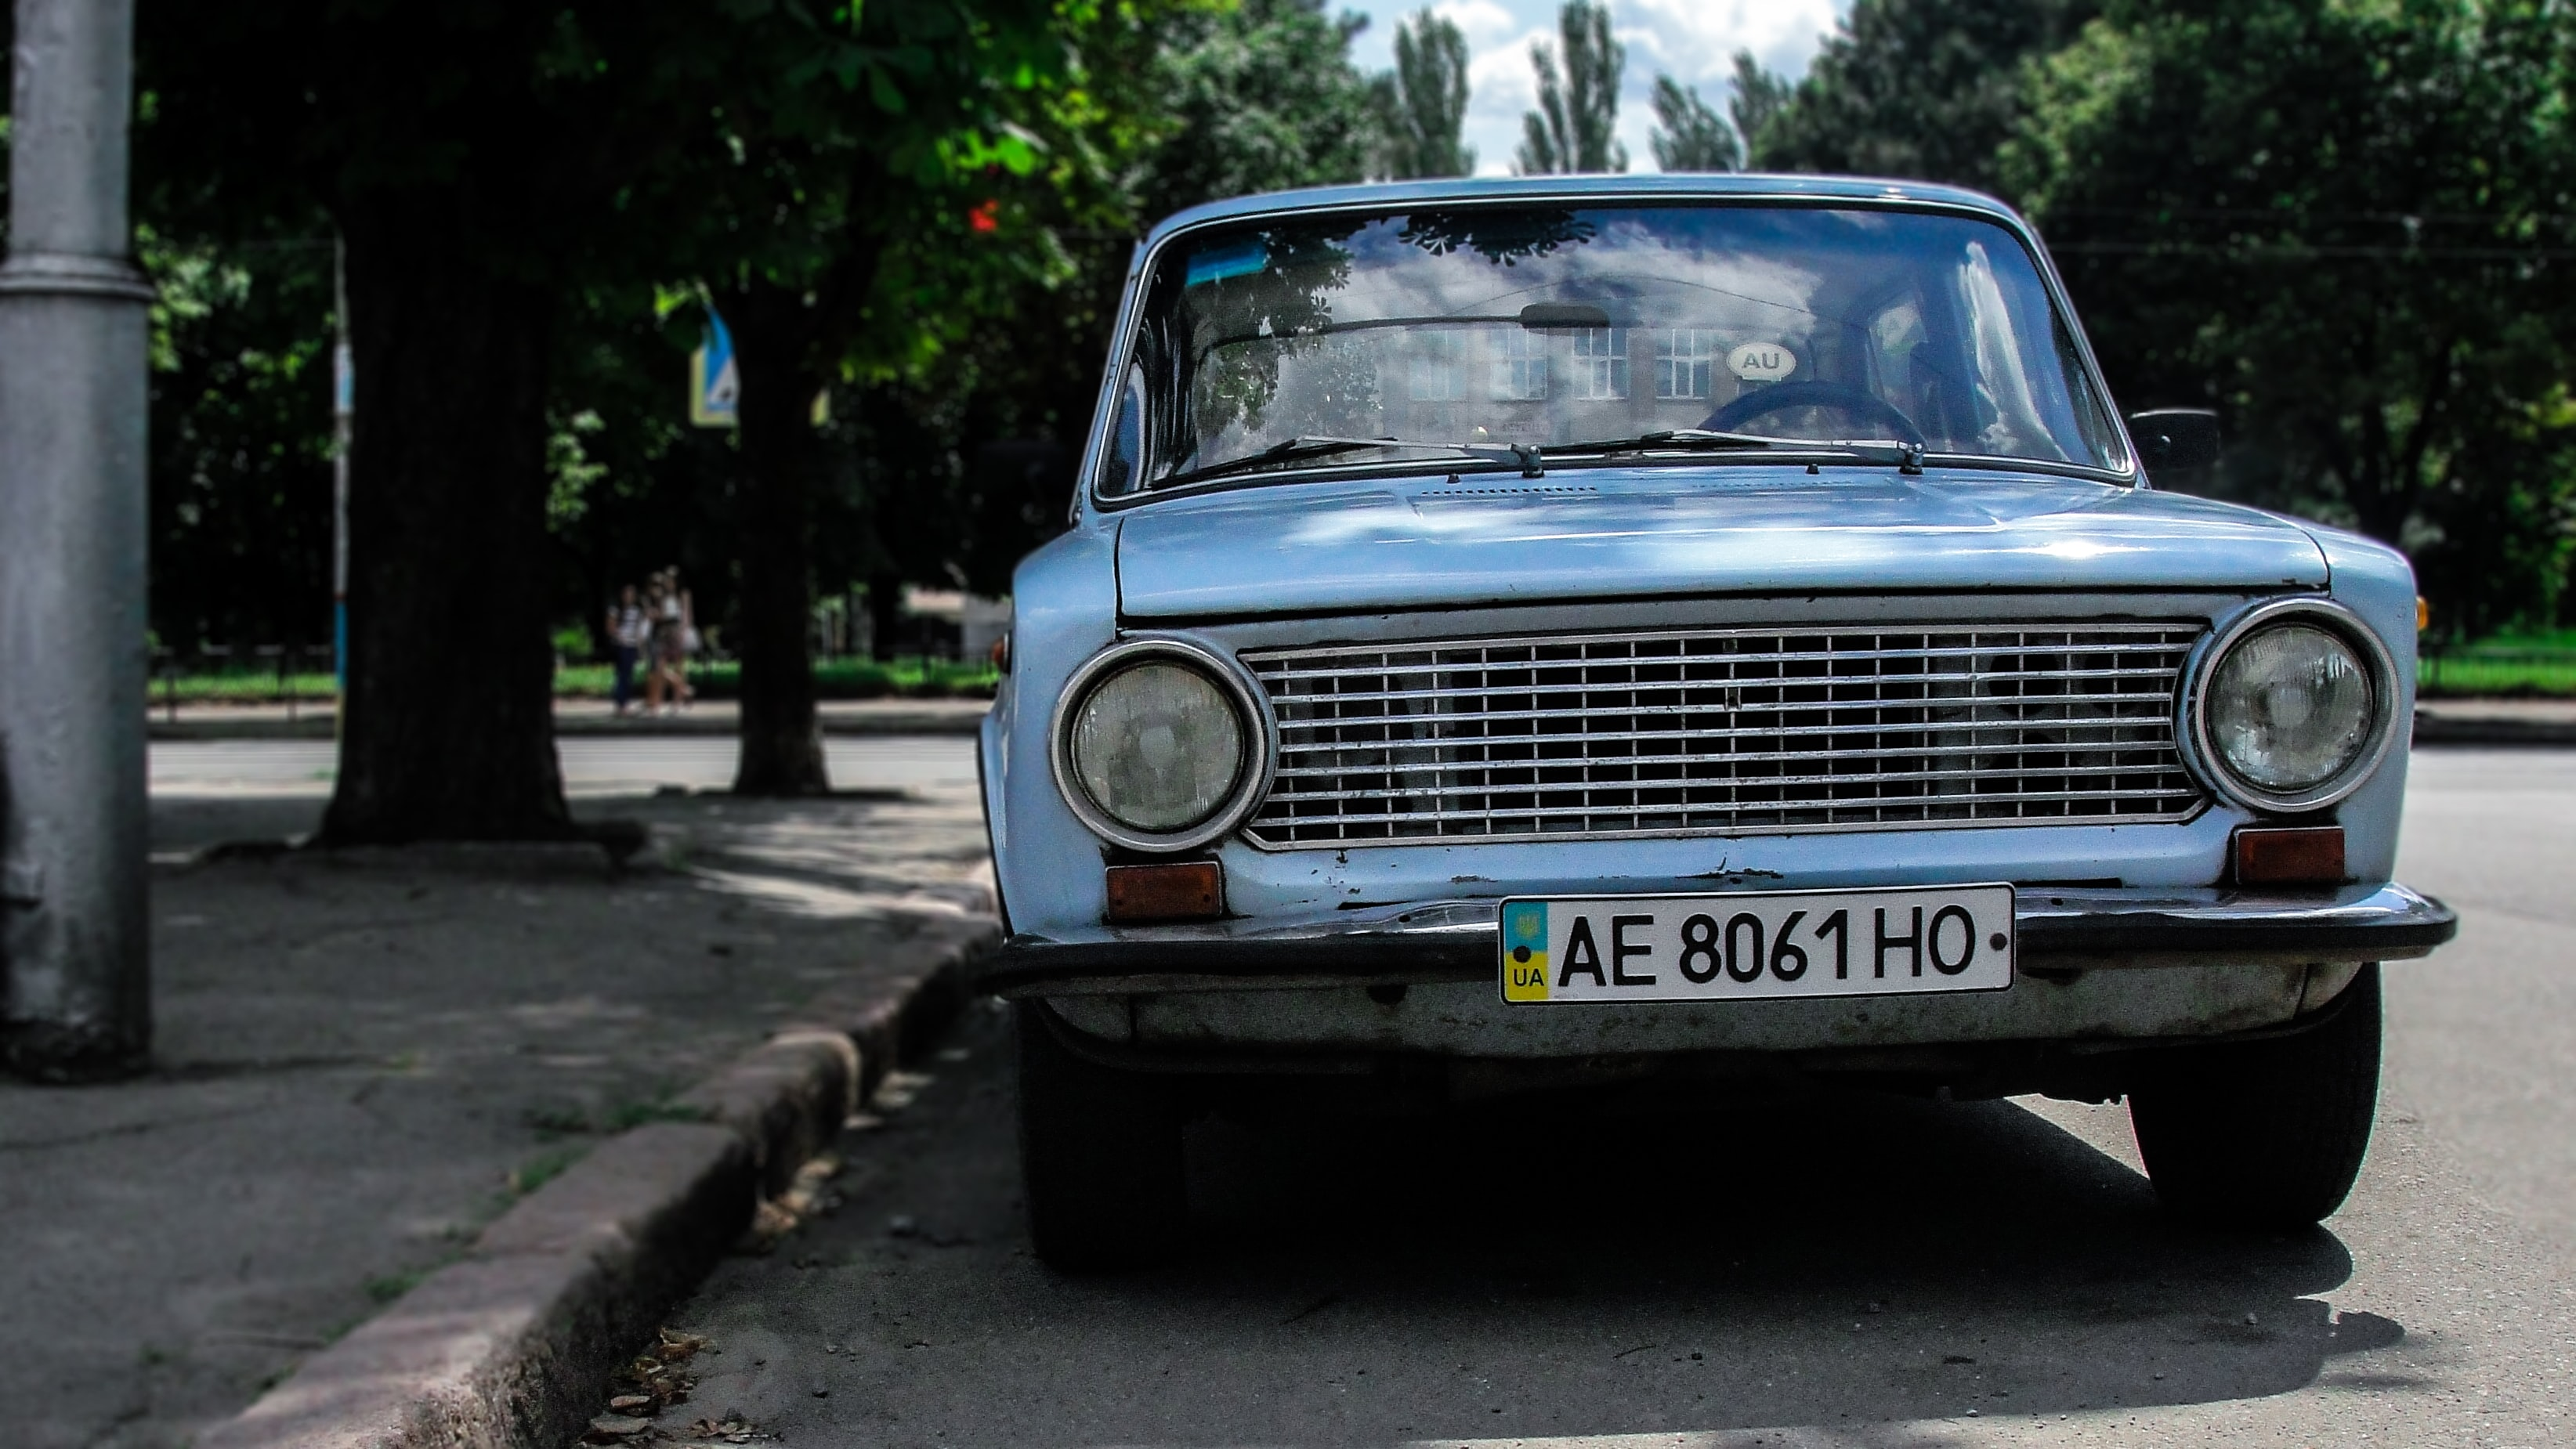 Vintage pale blue car parked on pavement on sunny day  in Kryvyi Rih